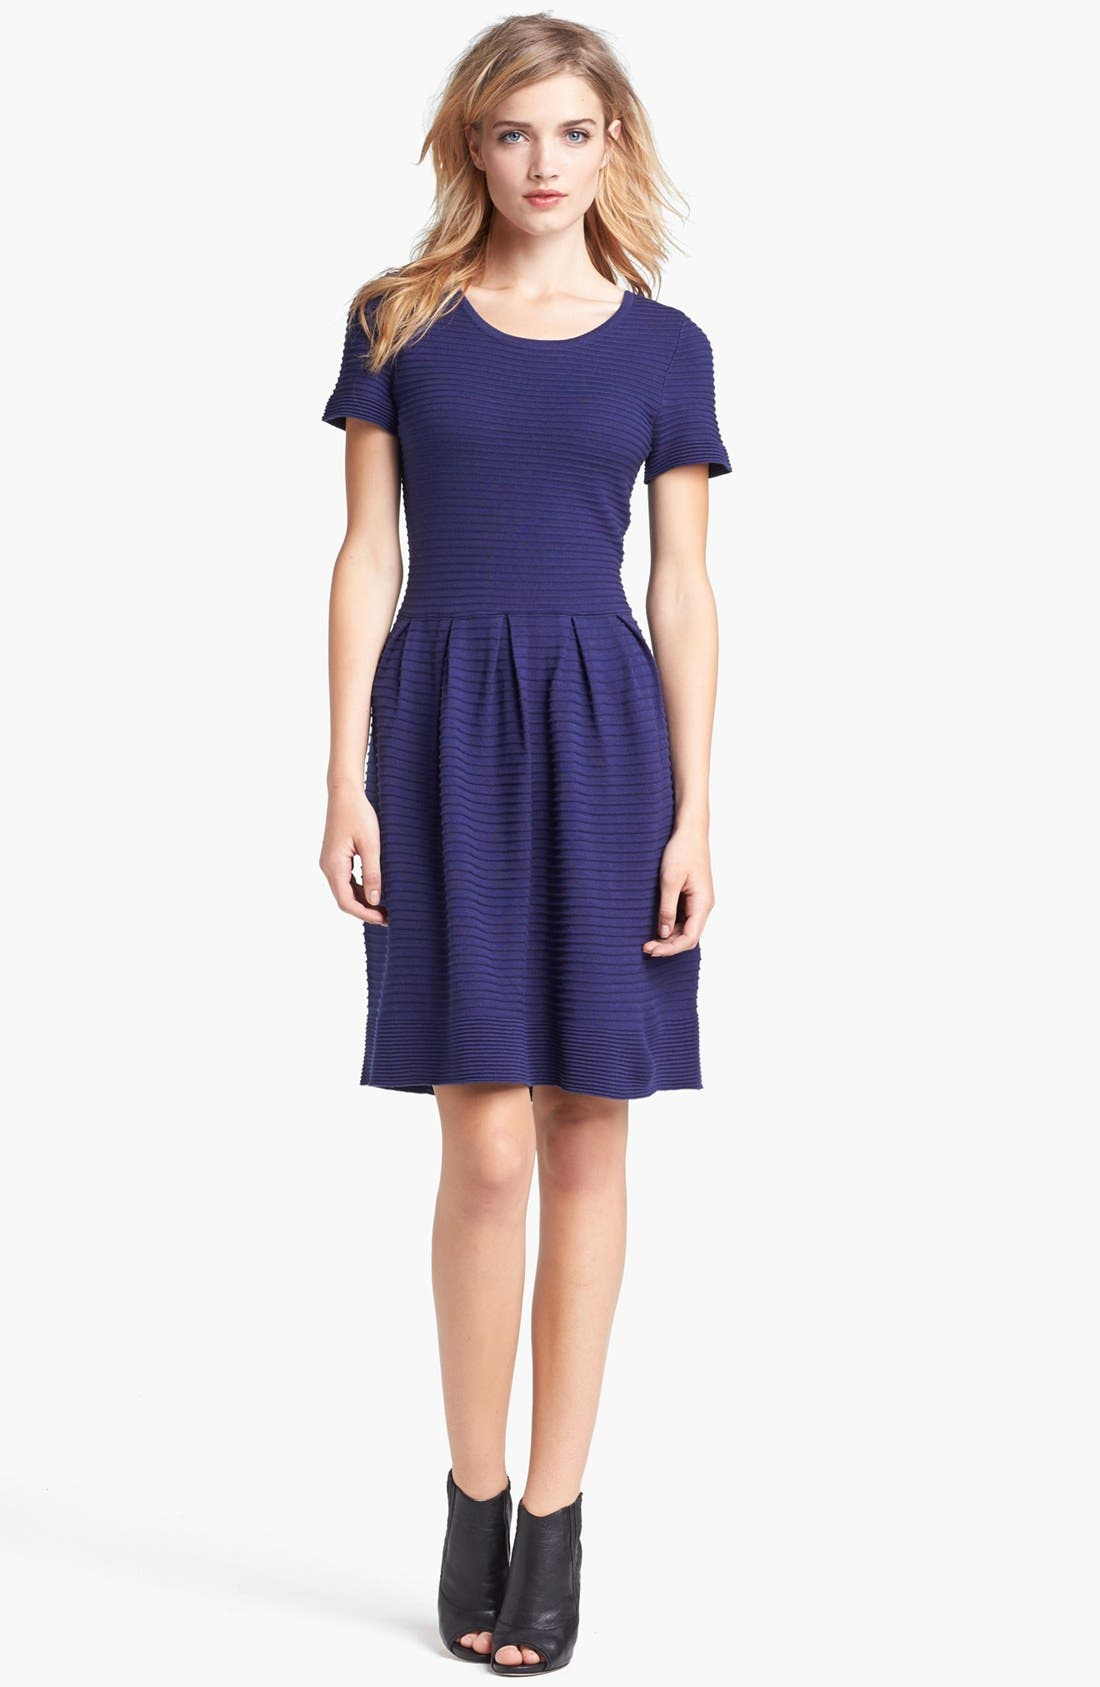 Main Image - Taylor Dresses Fit & Flare Sweater Dress (Regular & Petite)